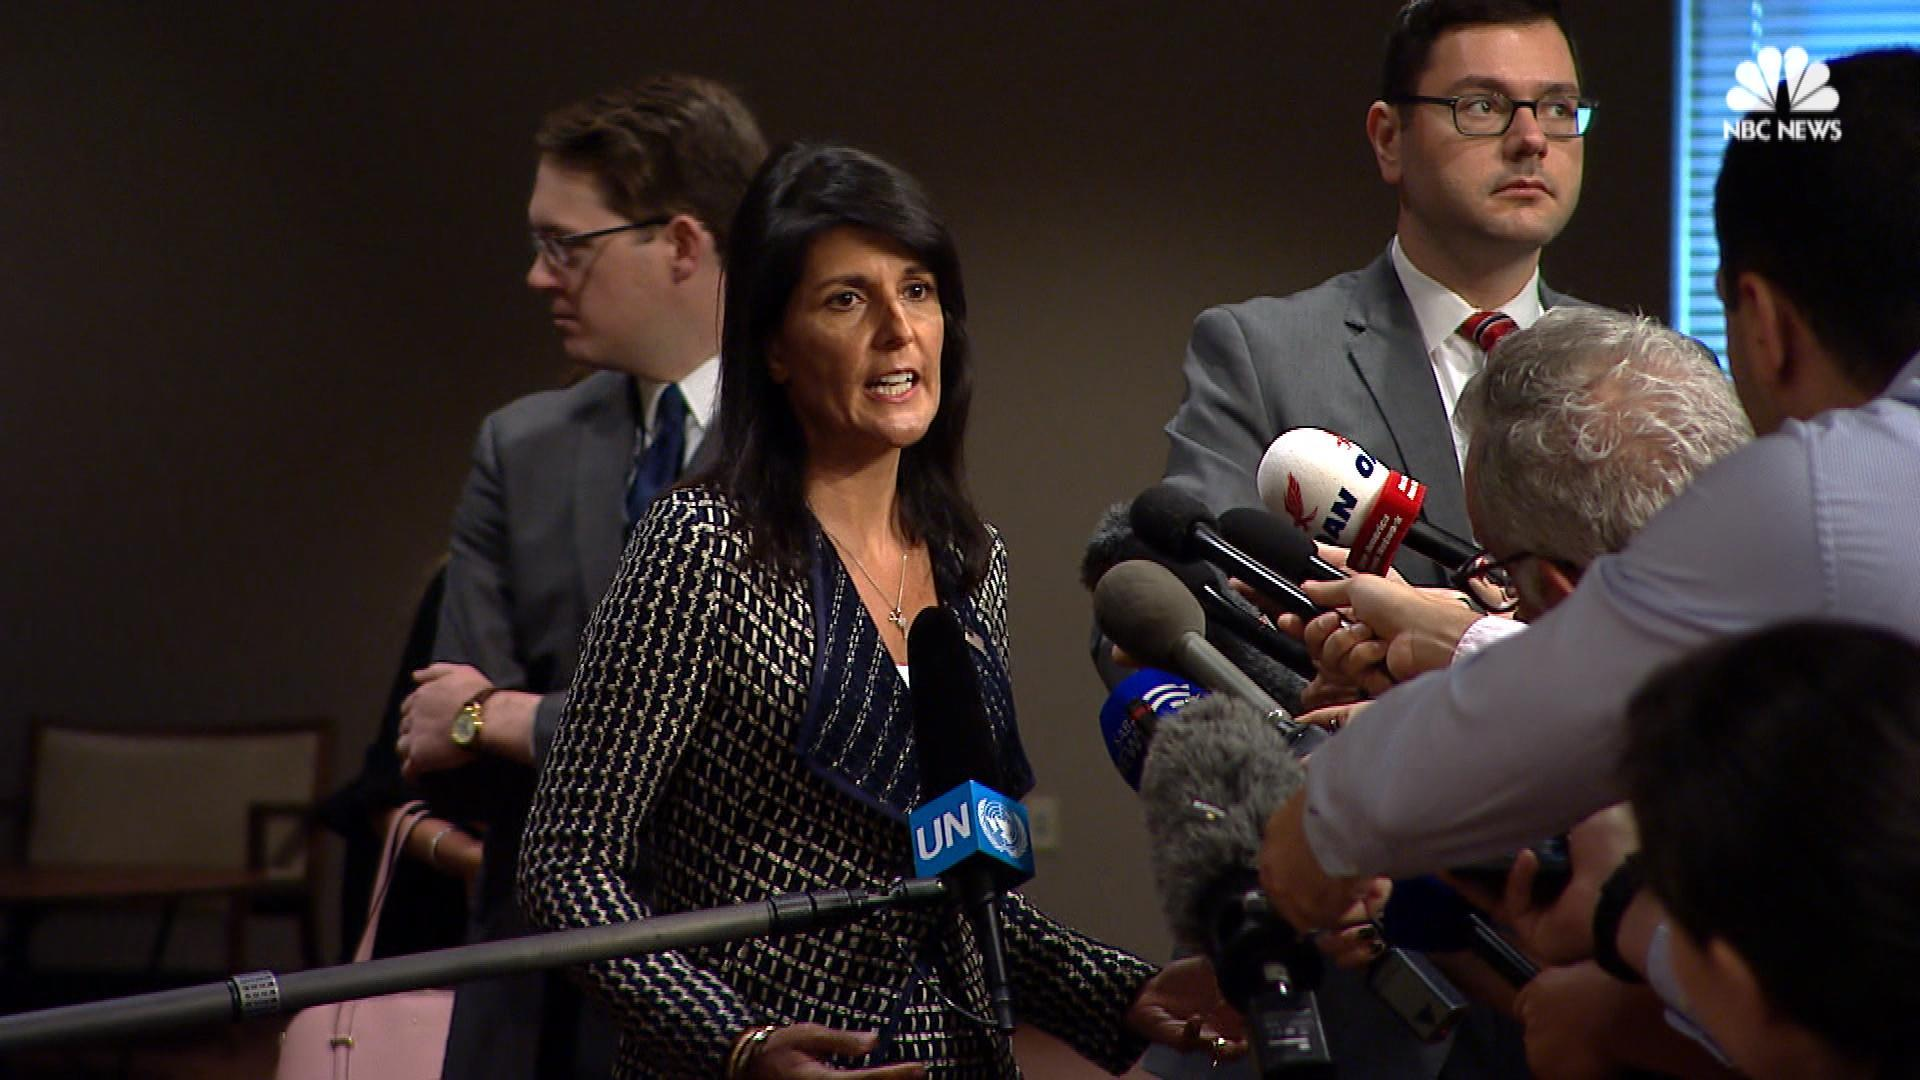 Haley on North Korea's Latest Missile Launch: 'Enough is Enough'